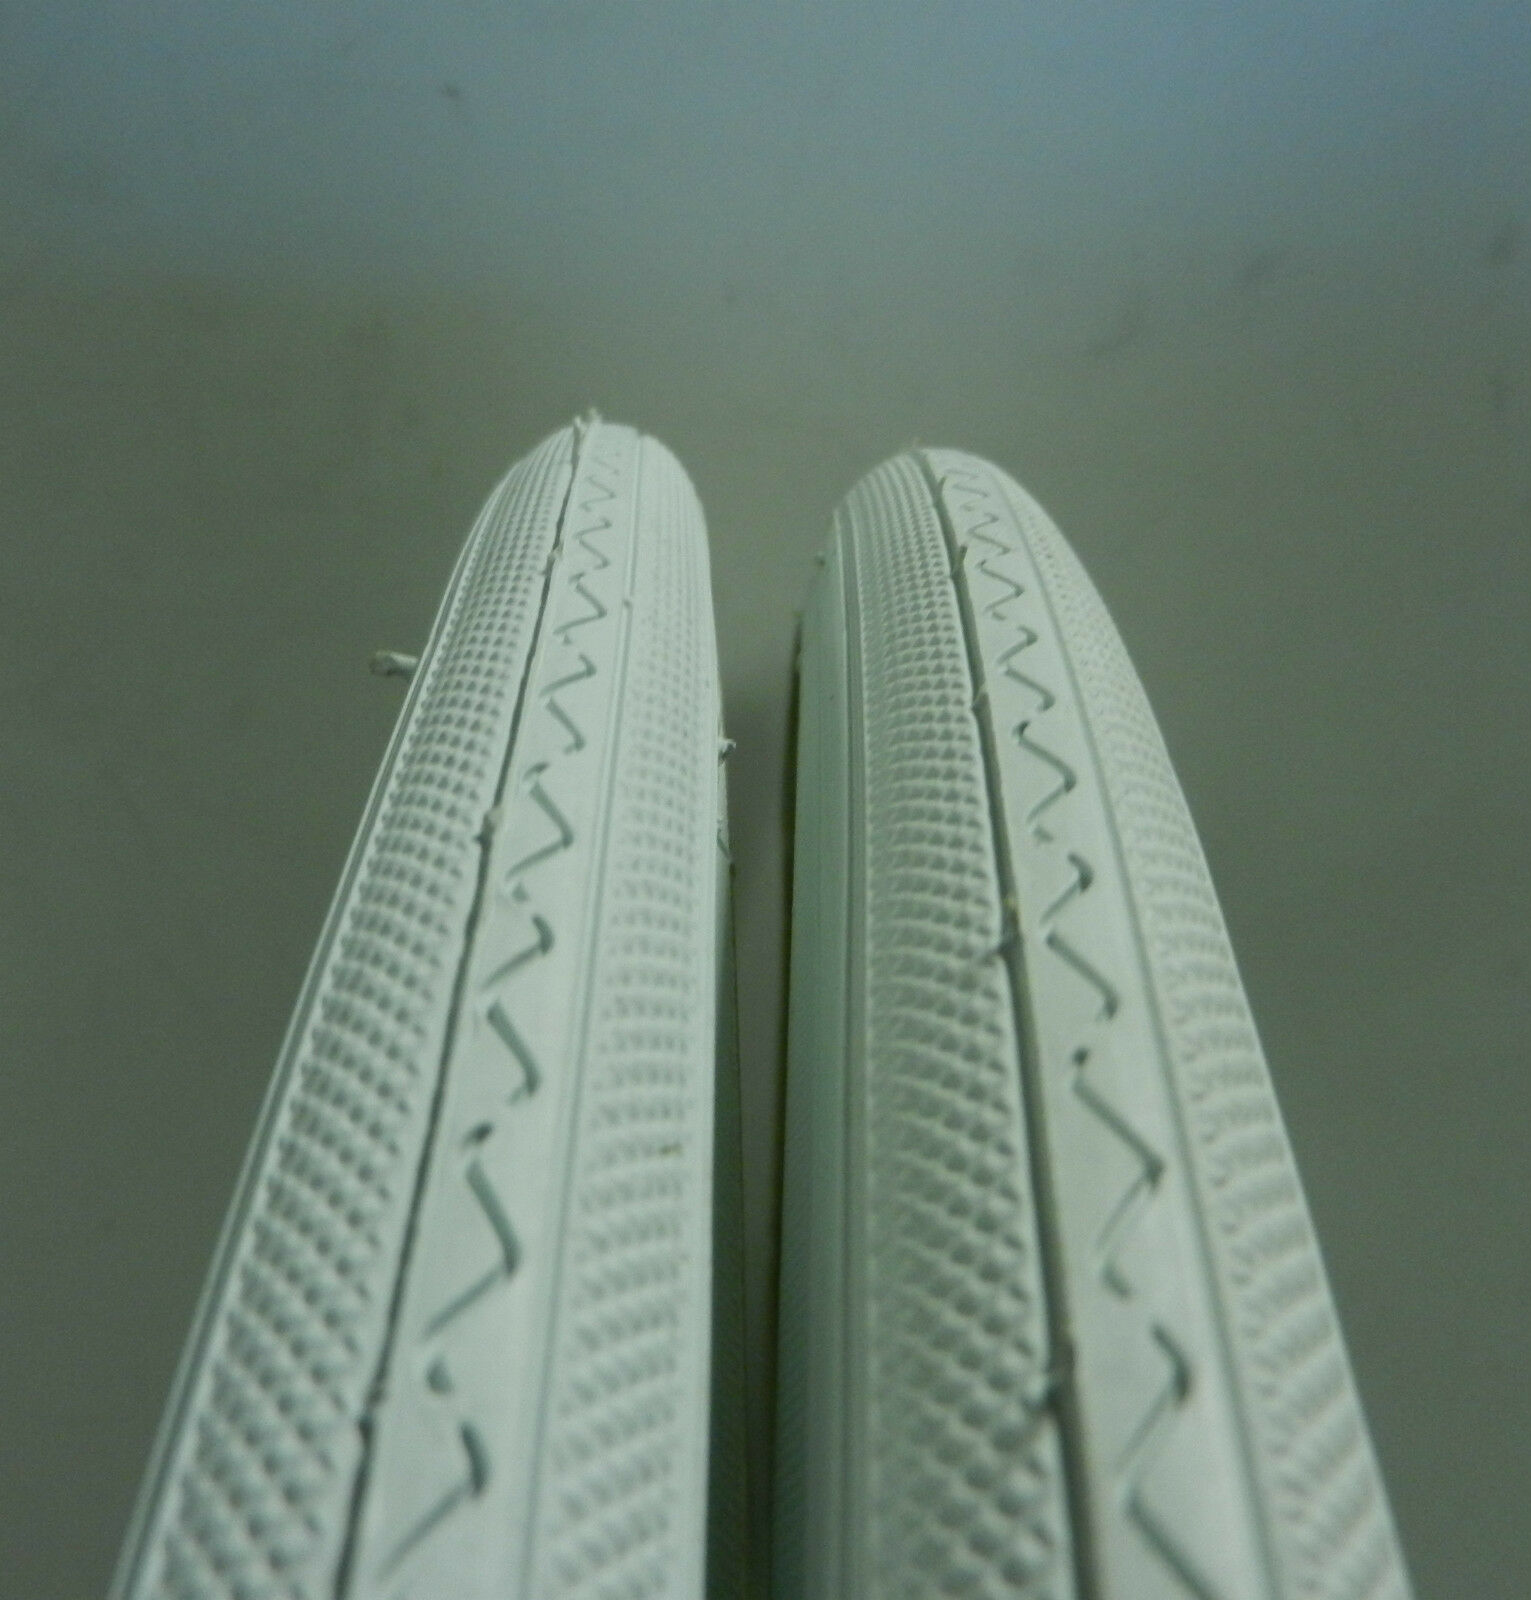 Two bicycle tires 27 x 1 Duro 75 psi White Tires Includes Tubes and Rim Strips